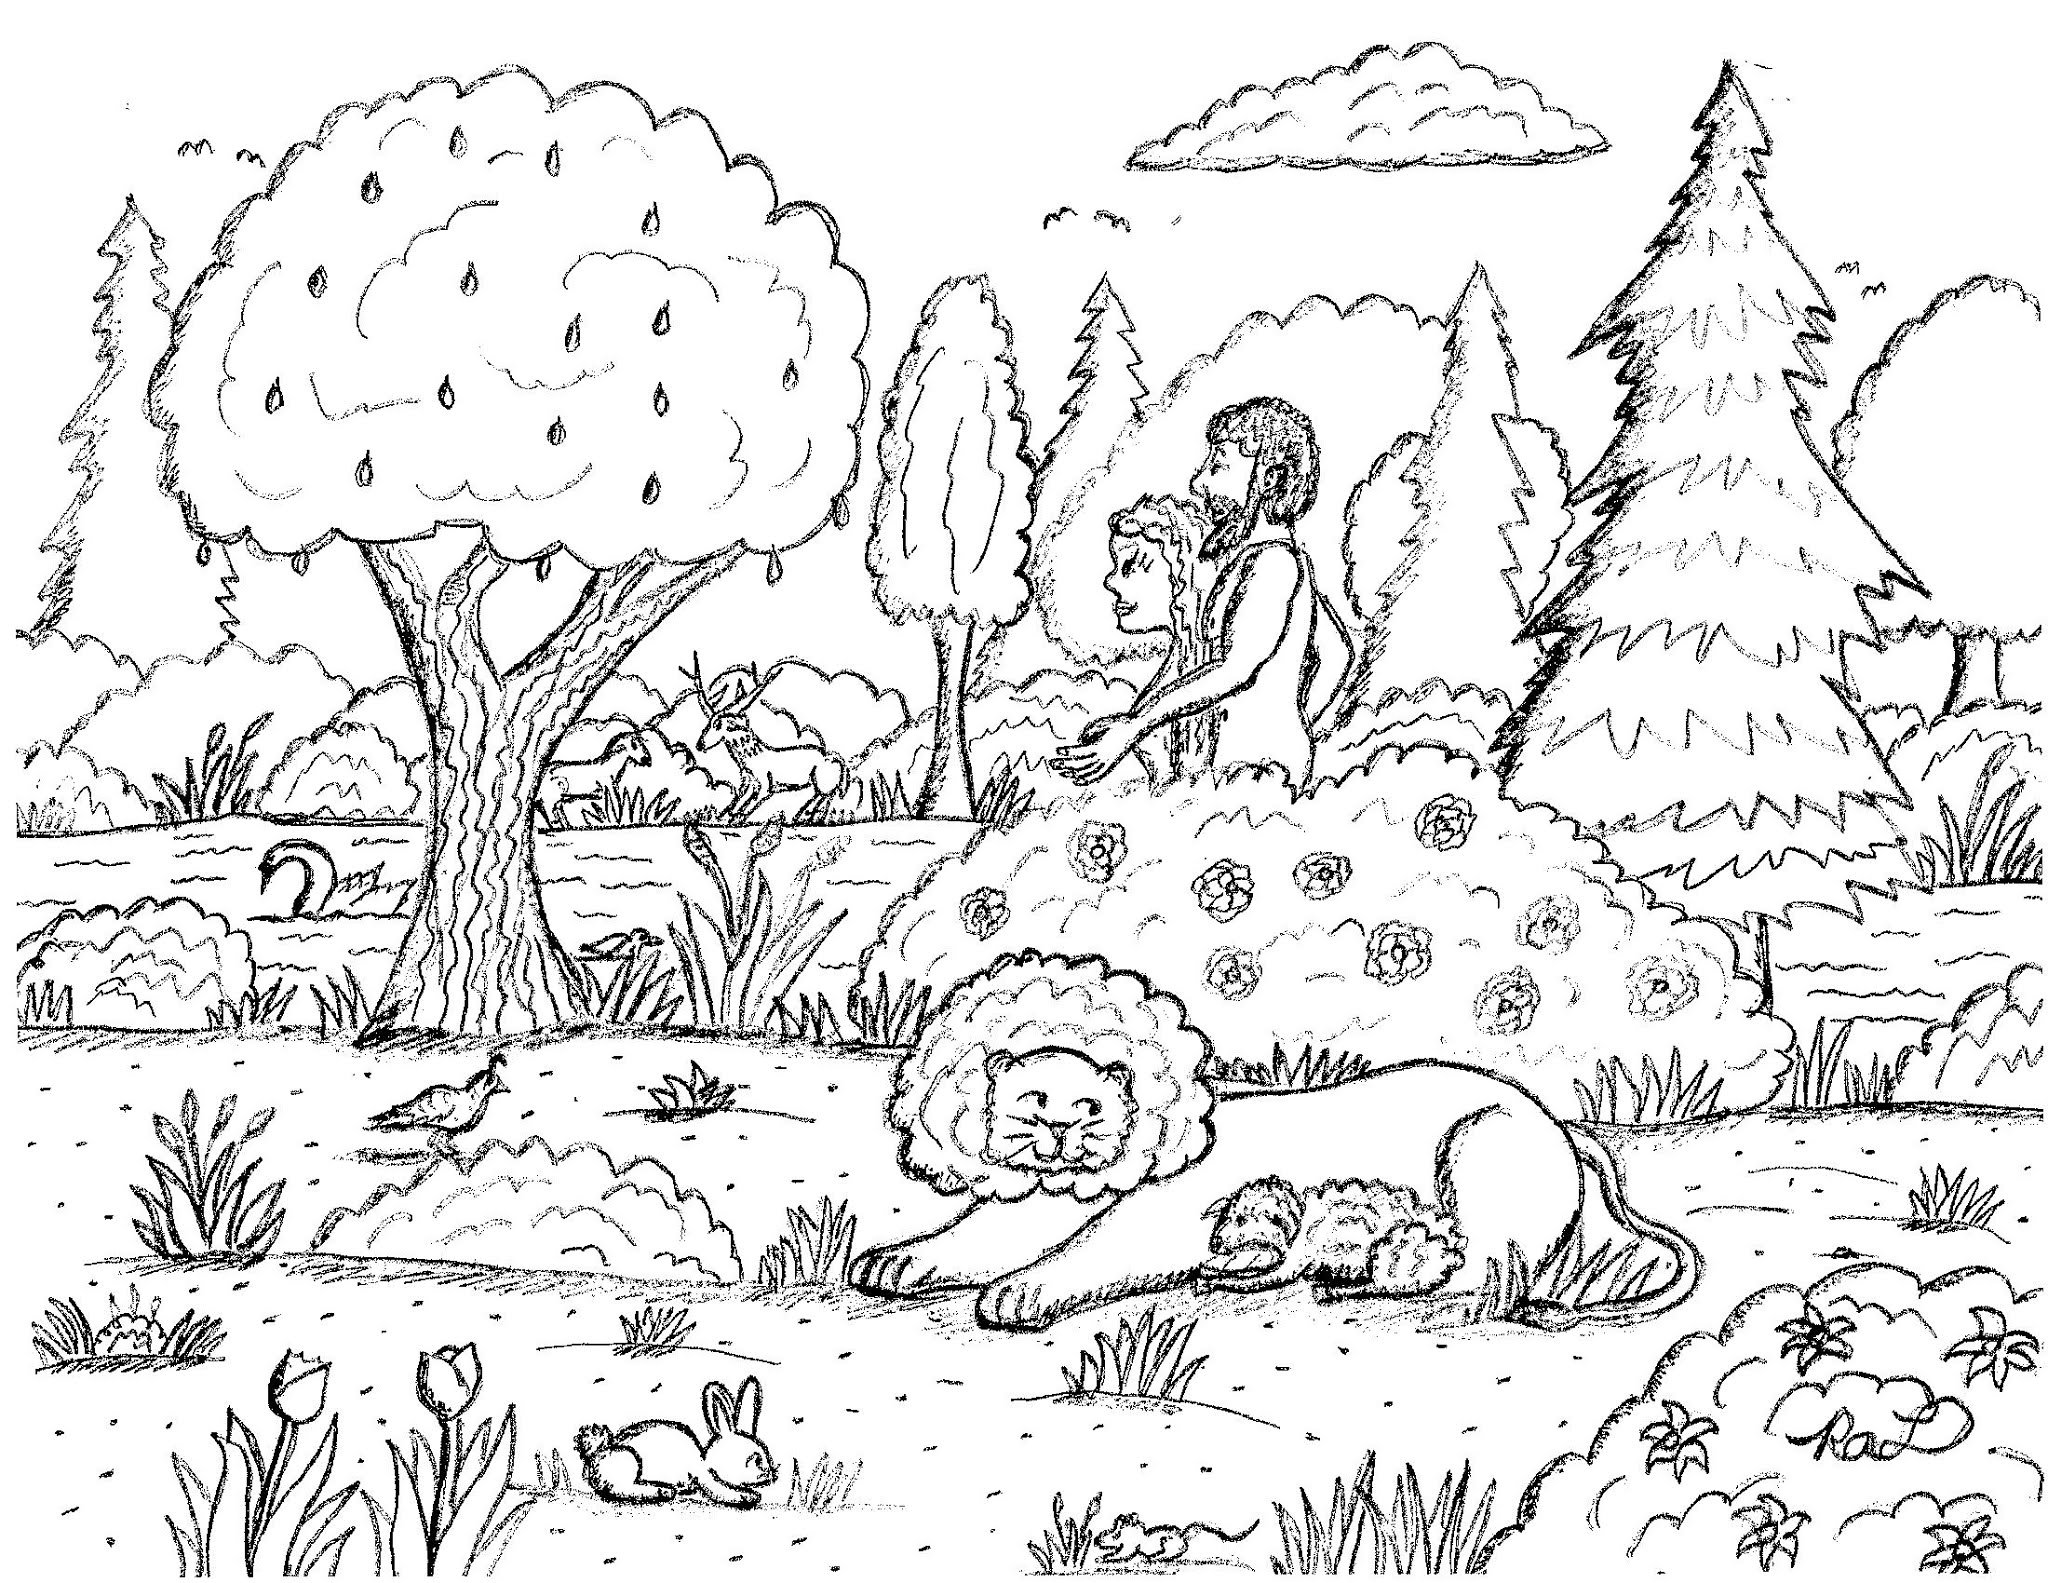 Robin S Great Coloring Pages Adam And Eve Walking In The Garden Of Eden Coloring Page